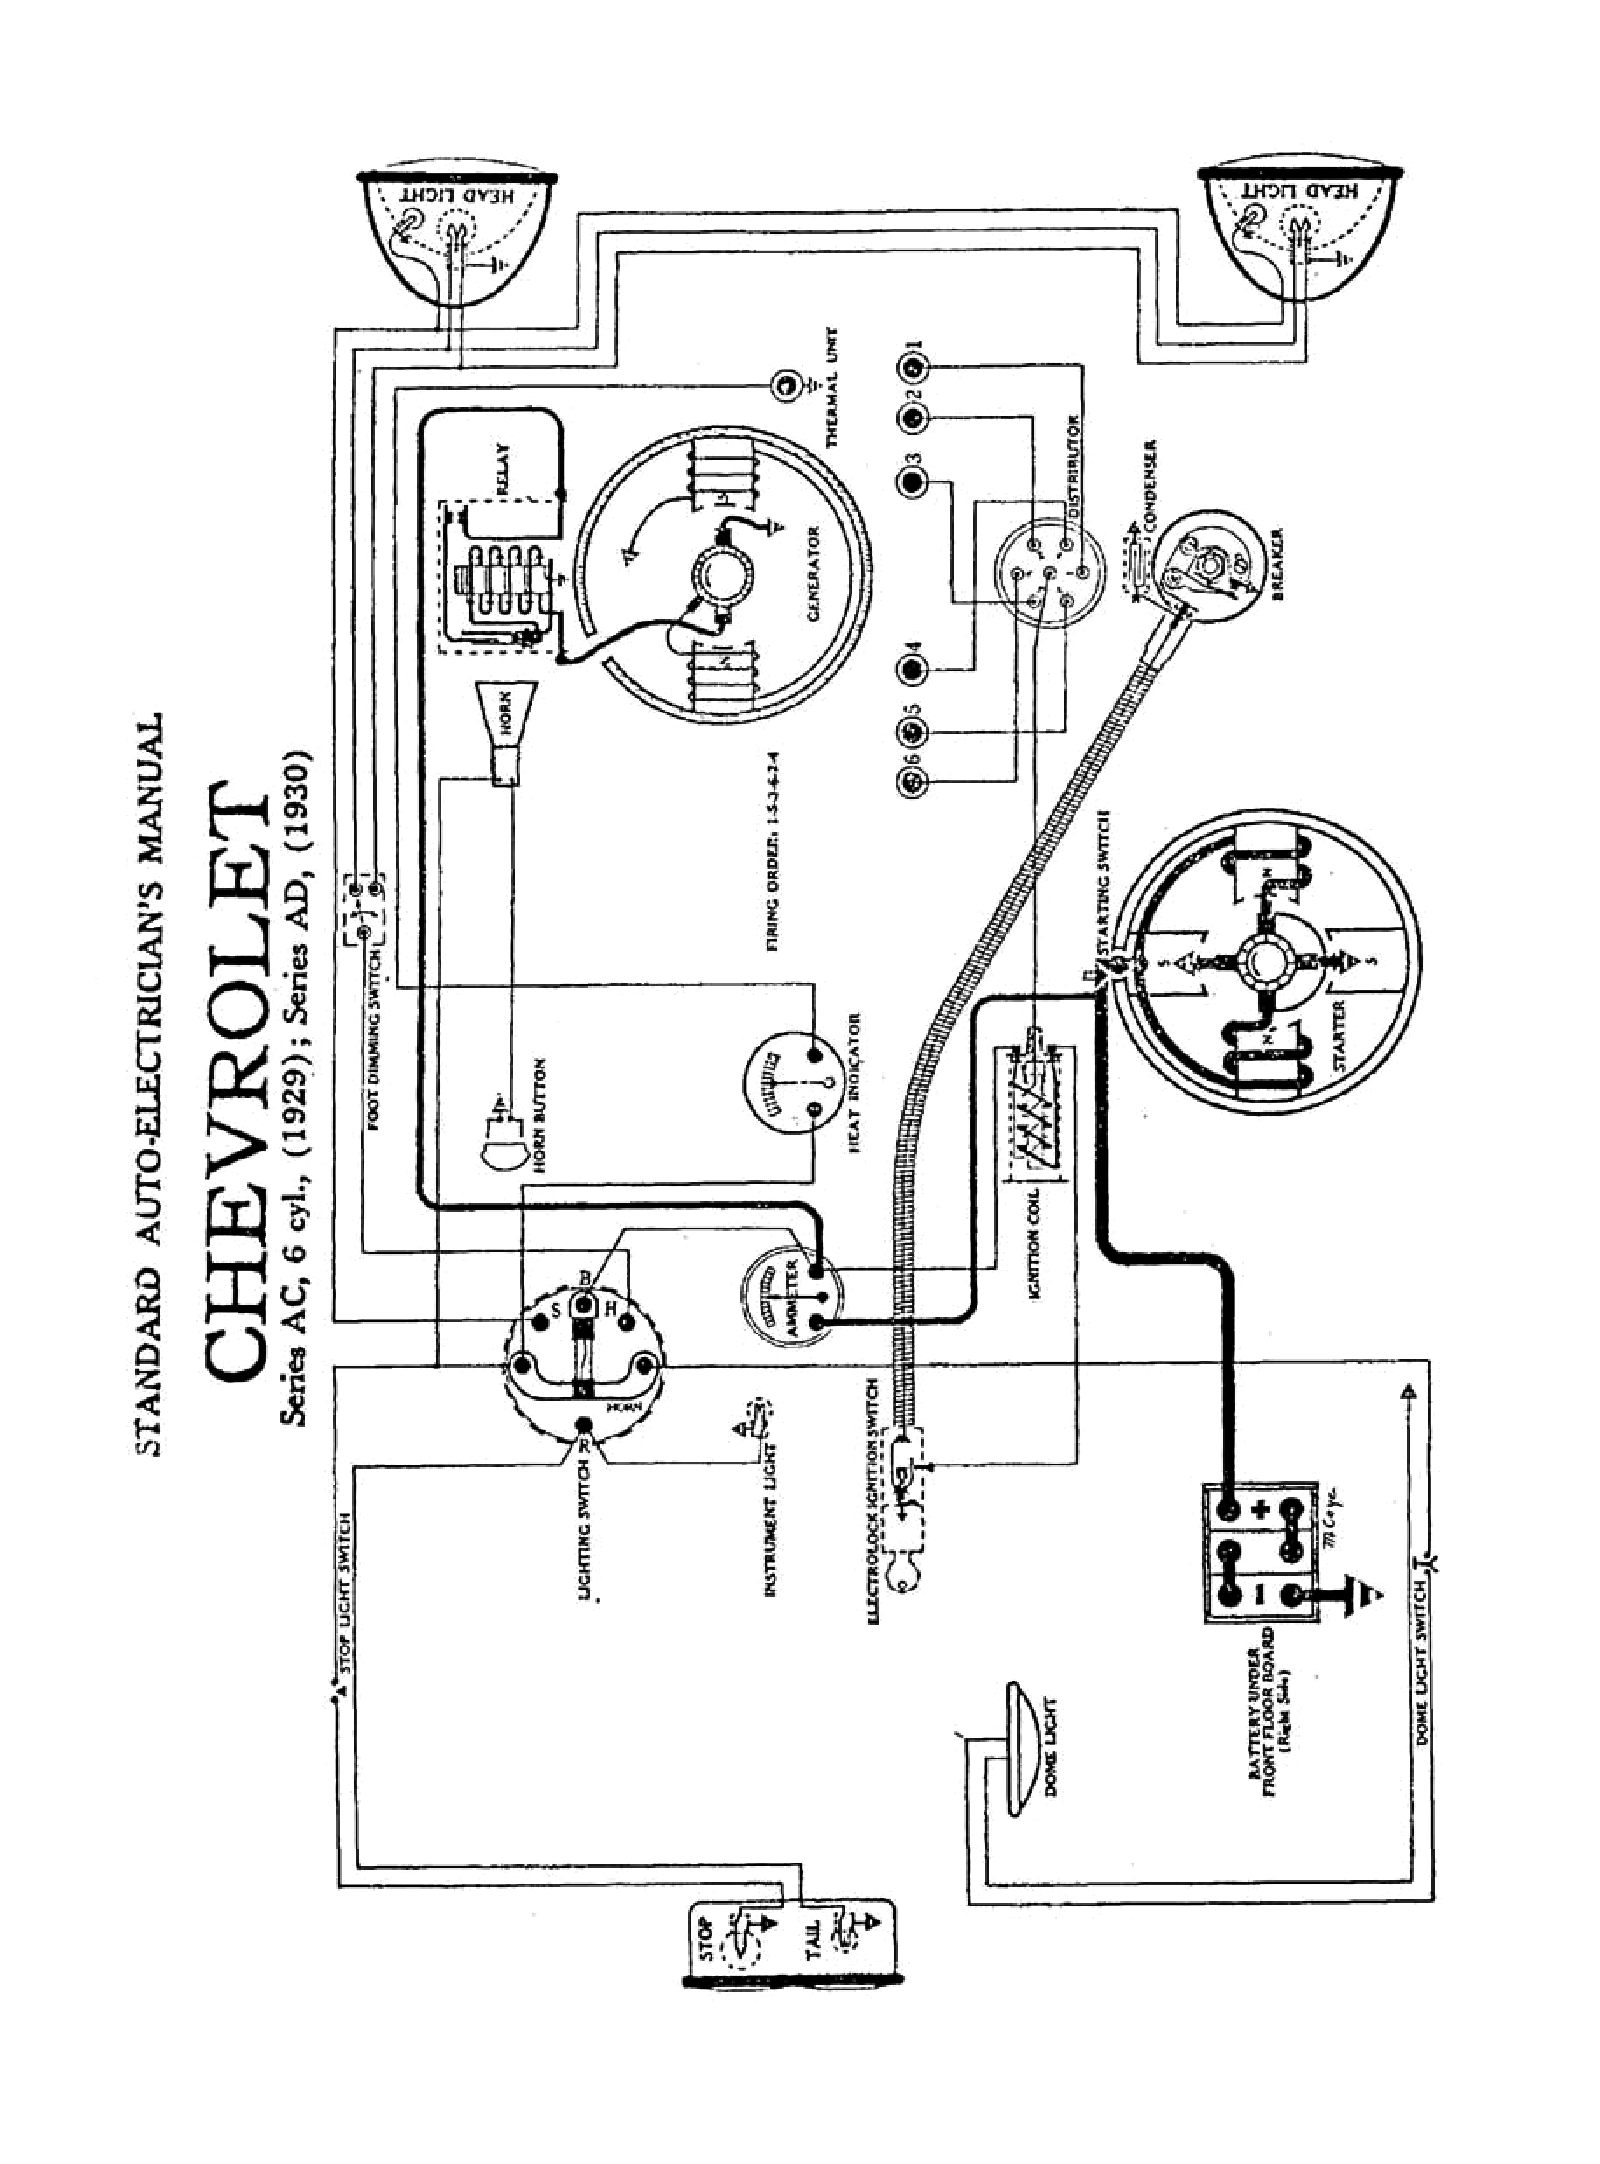 chevy wiring diagrams rh chevy oldcarmanualproject com Mercury Outboard Wiring Schematic Diagram Mercury 60 HP Wiring Diagram